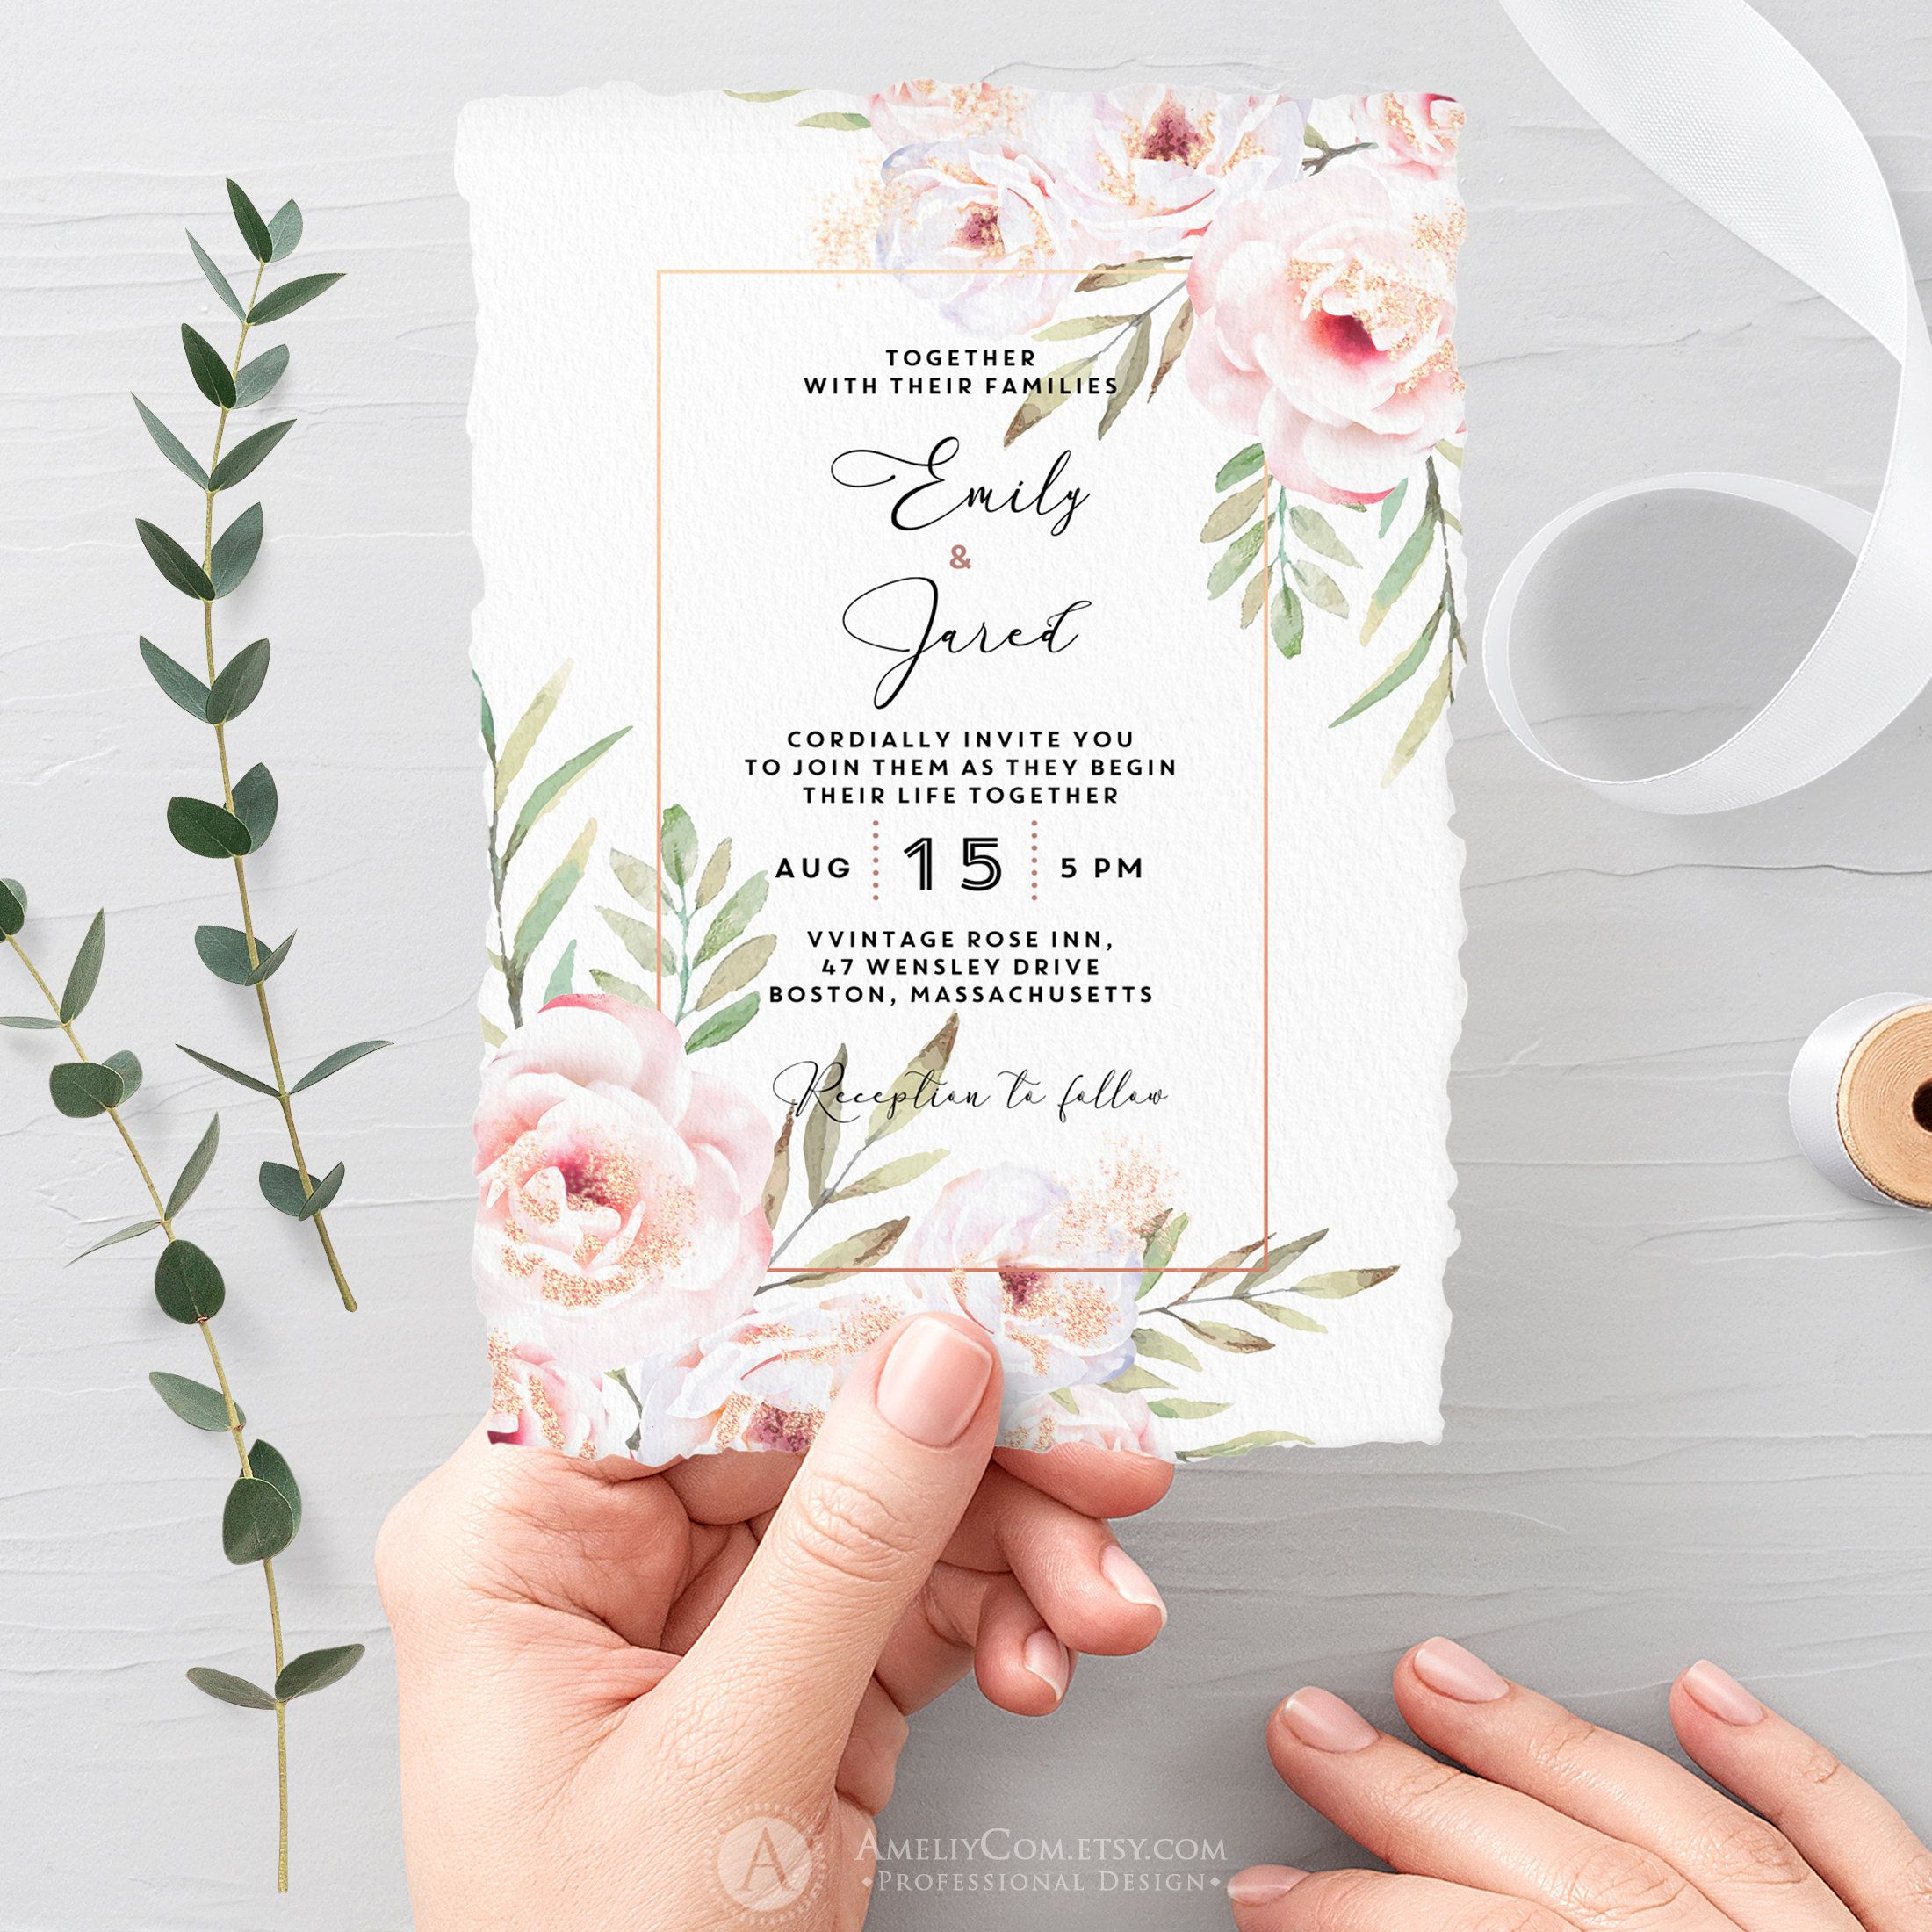 Floral Wedding Invitation Printable With Entourage Floral Wedding Invitations Printable Wedding Invitations Printable Wedding Invitations